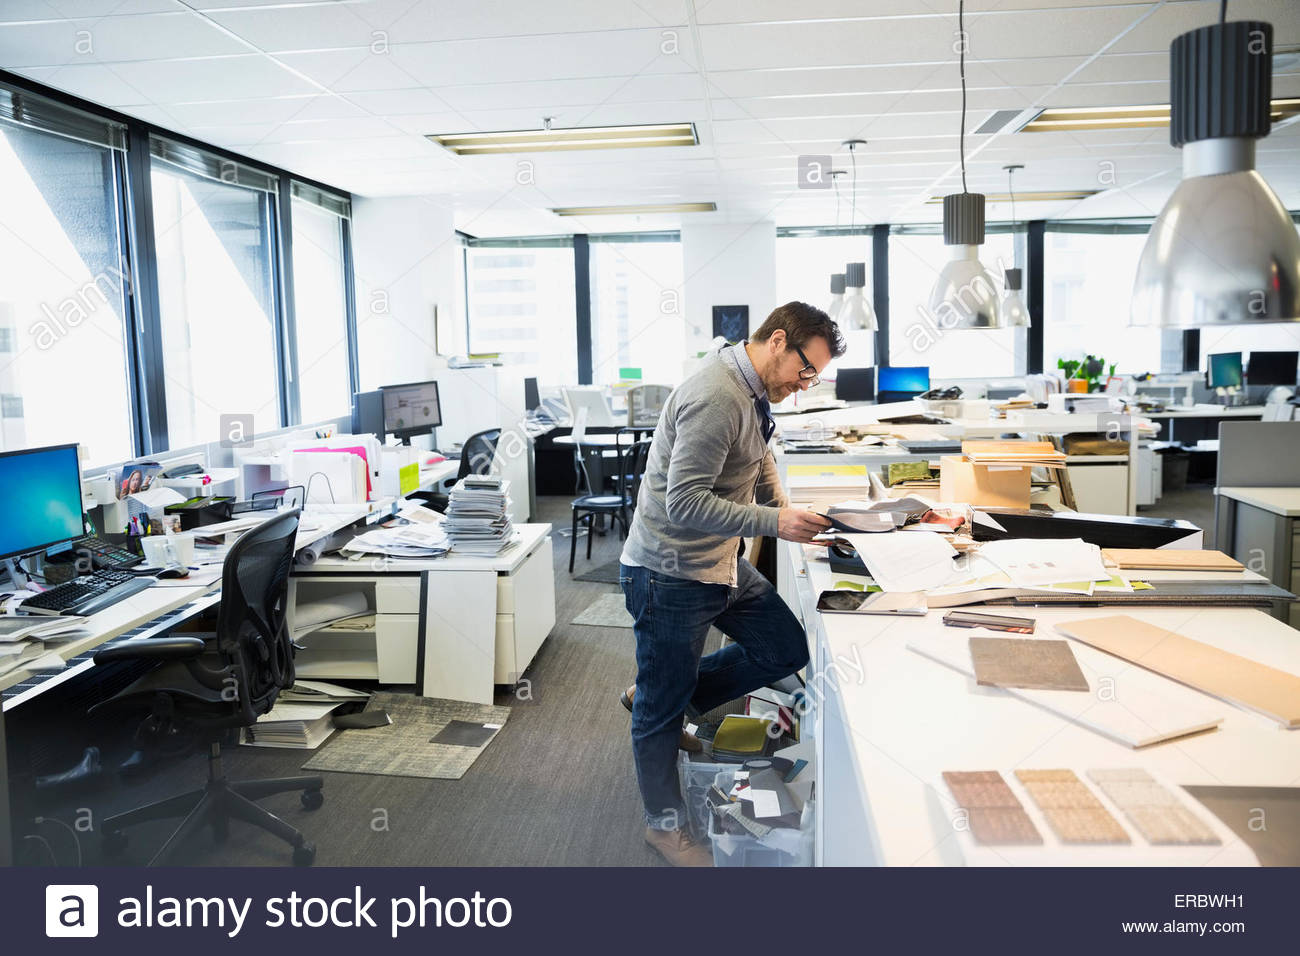 Interior Designer working at table in office Photo Stock